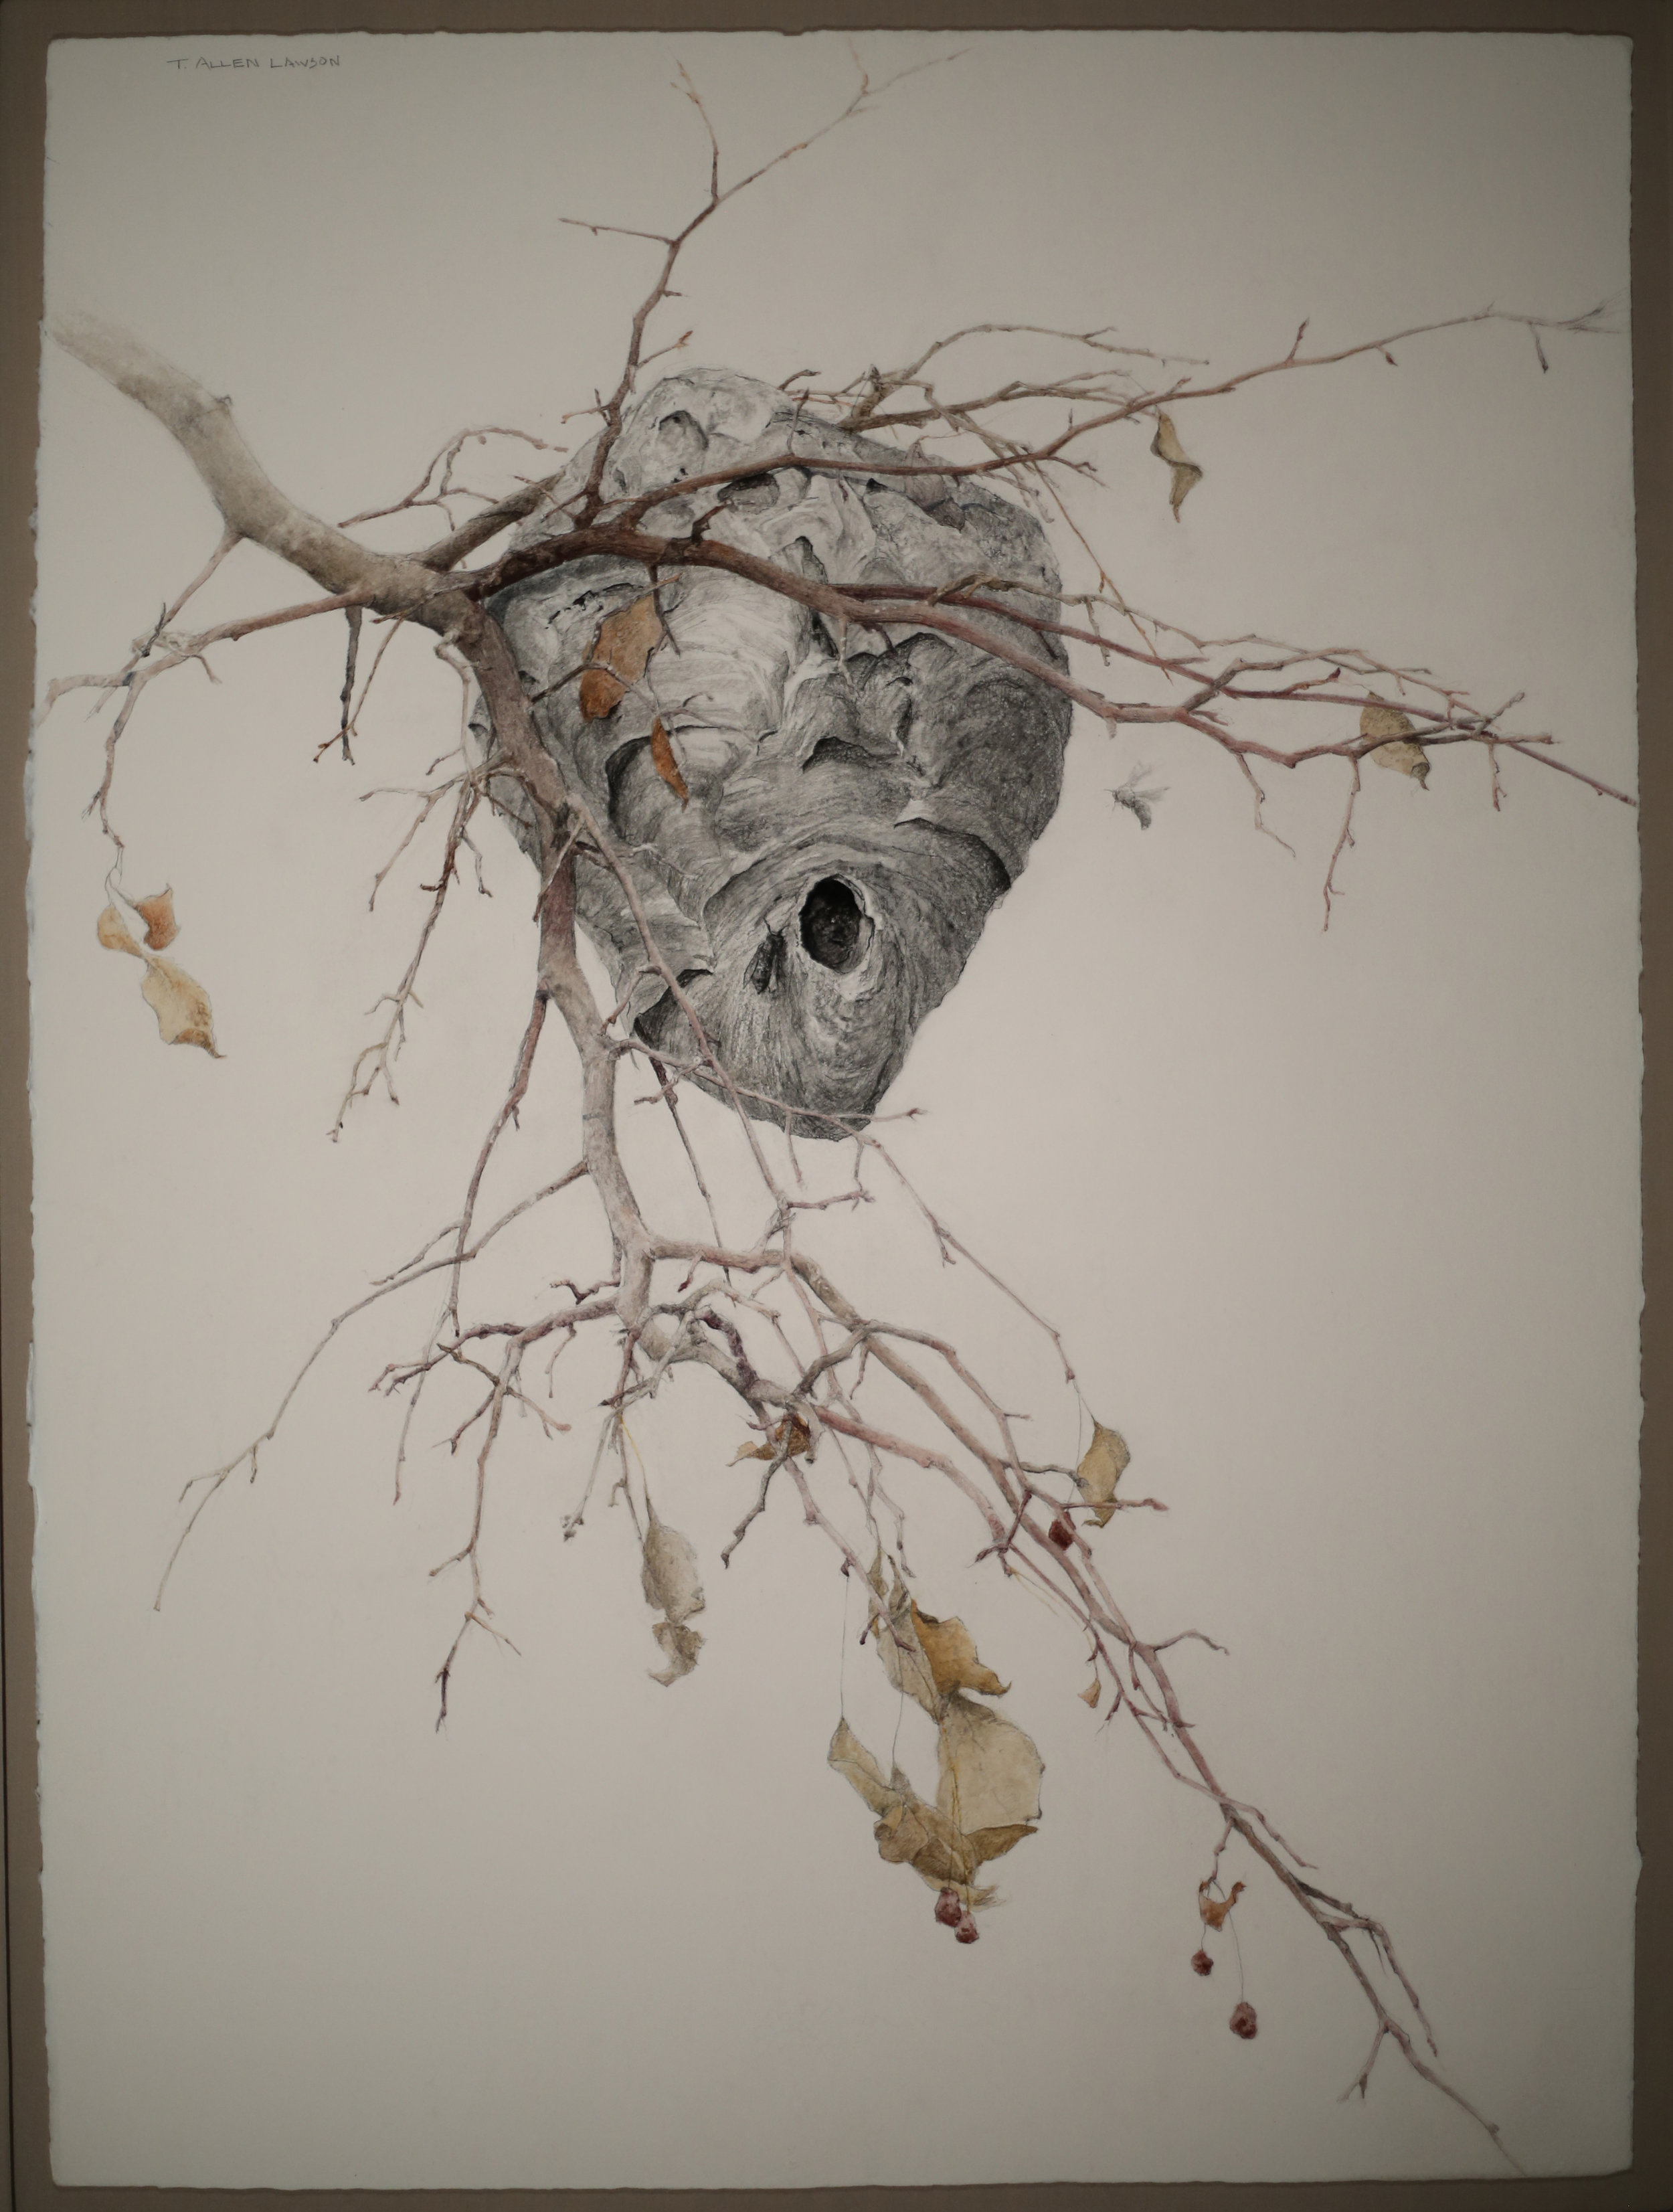 Nest with Two Wasps, graphite and pastel on handmade paper, 30 x 22in. Collection of Mr. and Mrs. David McCullough